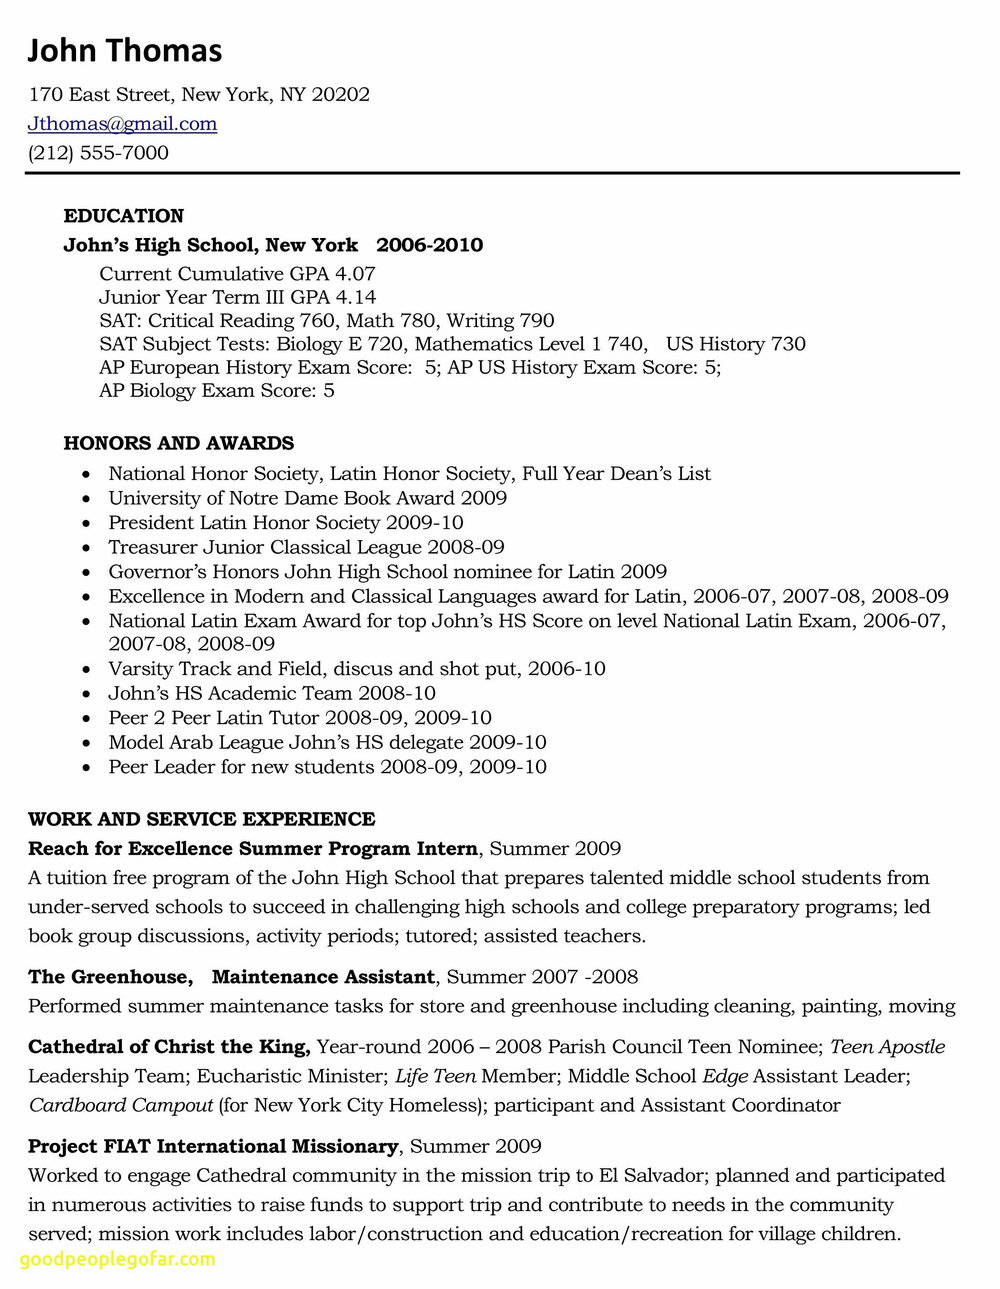 Free Online Resume Search For Employers